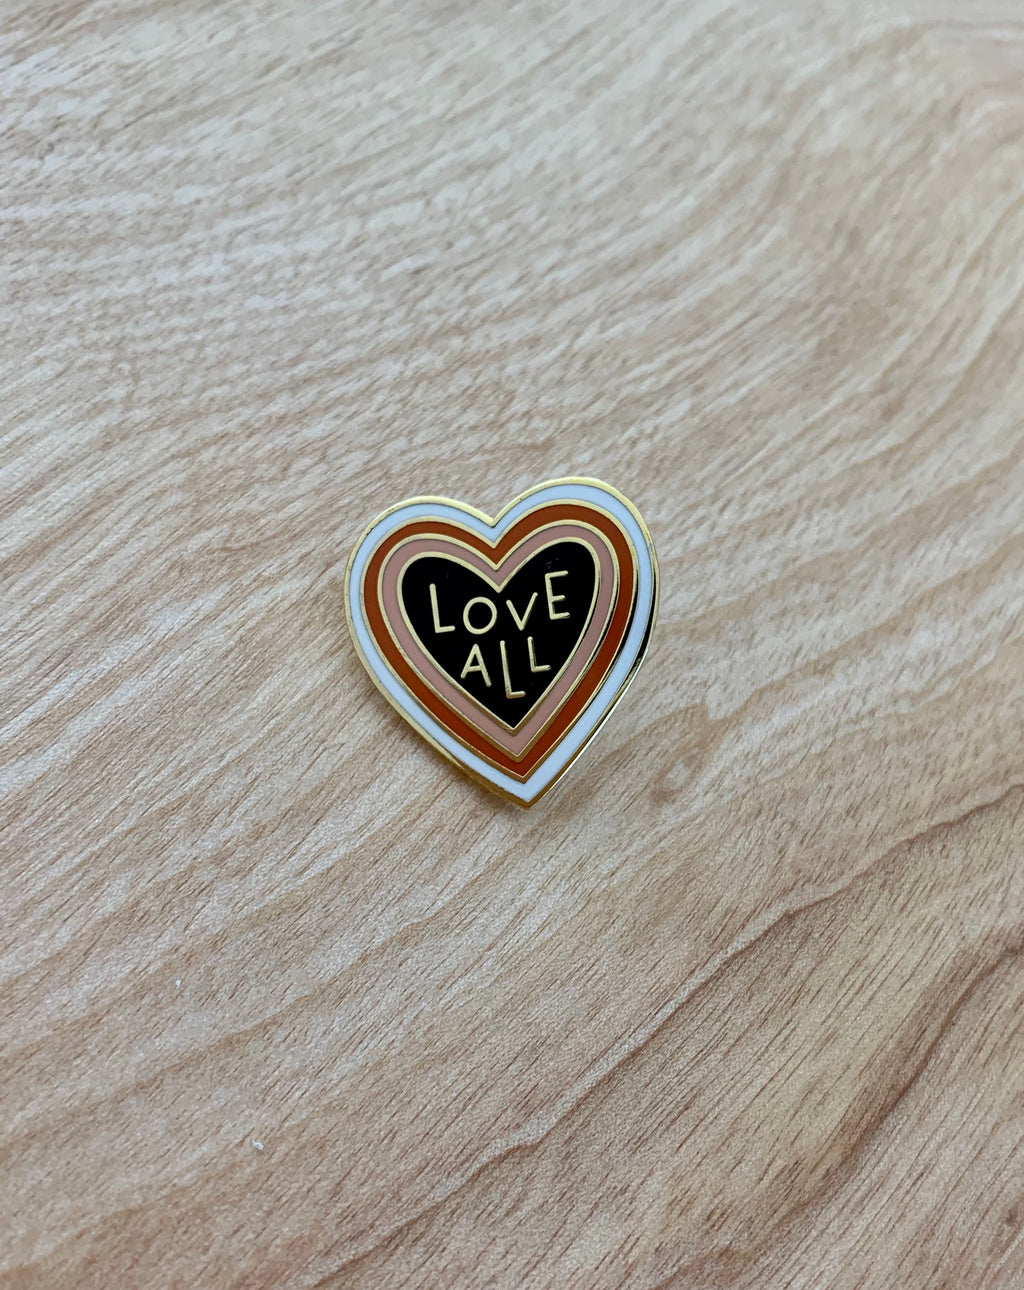 Love All Pin